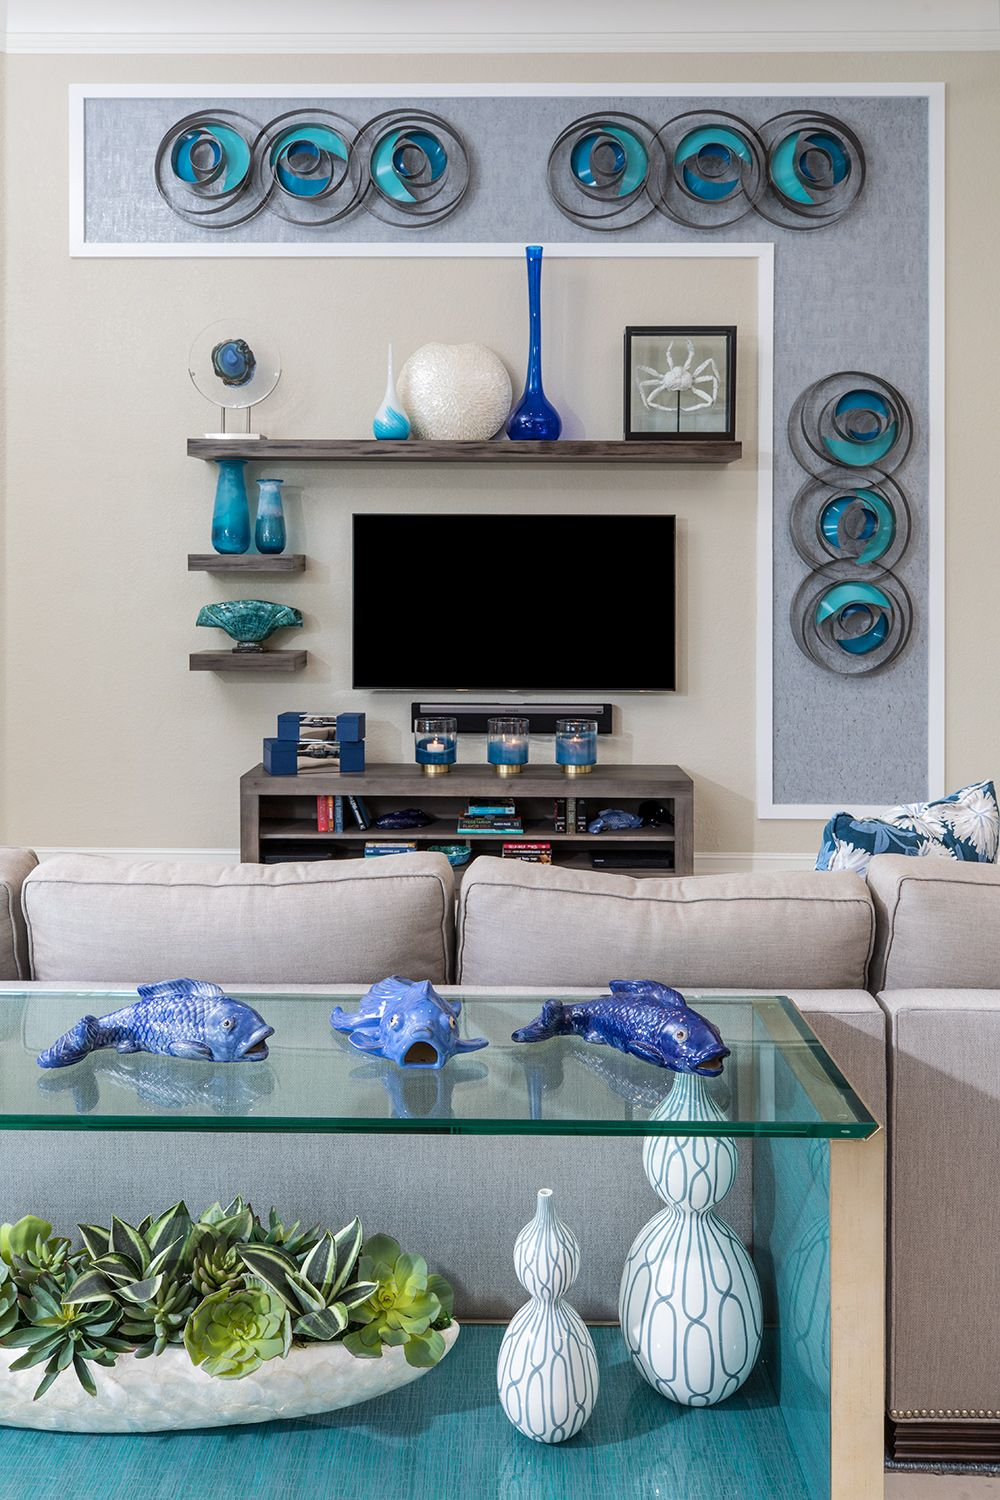 Popular Interior Design For Tv Showcase: Feature Wall. Surrounds Wall-mounted TV.